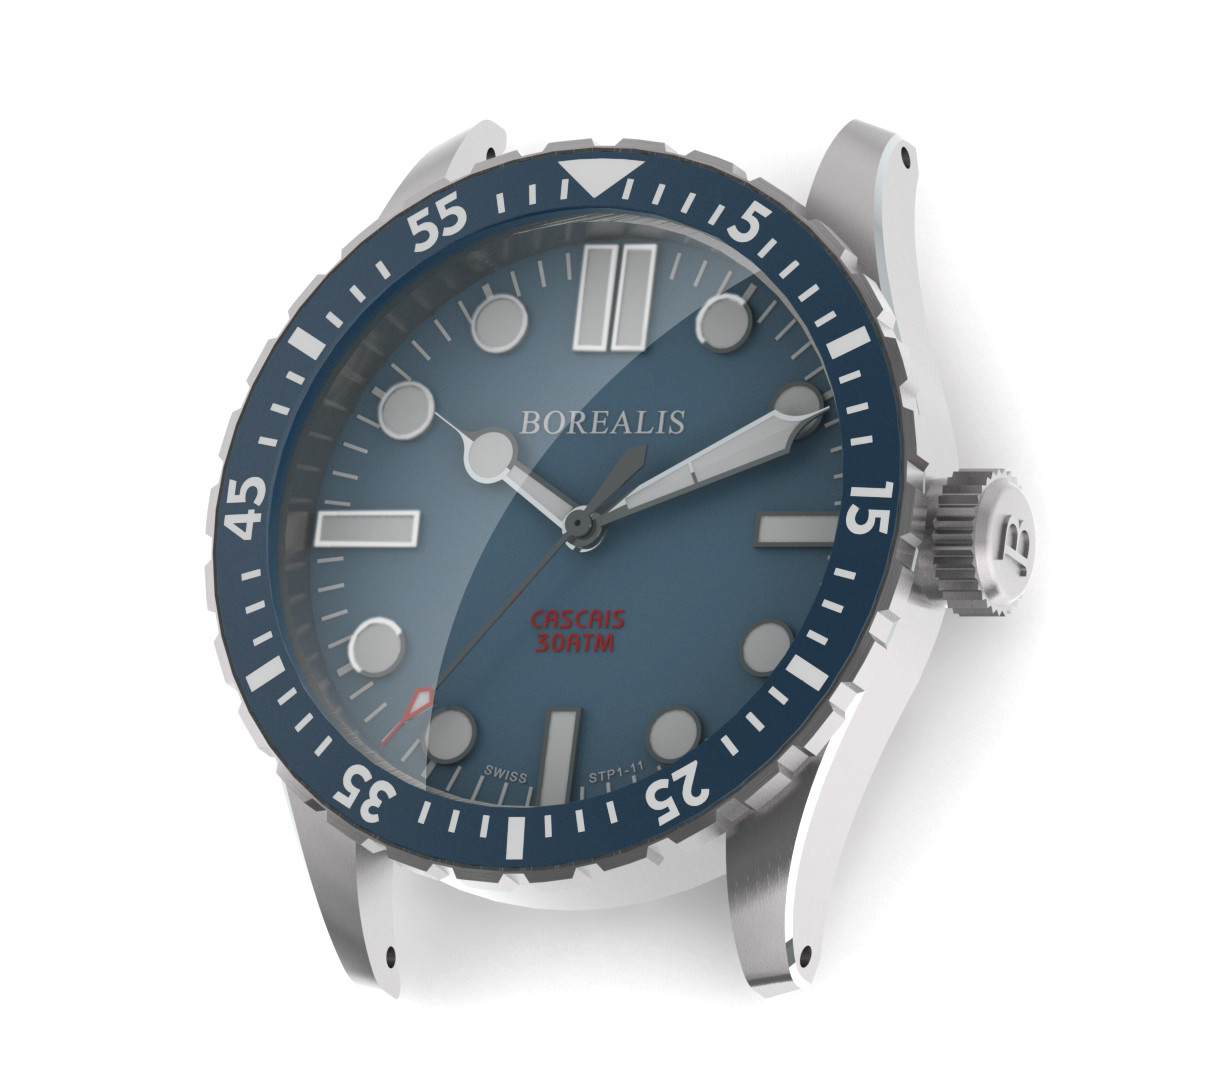 Borealis Cascais Blue Dial Cathedral Hands No Date BGW9 Lume